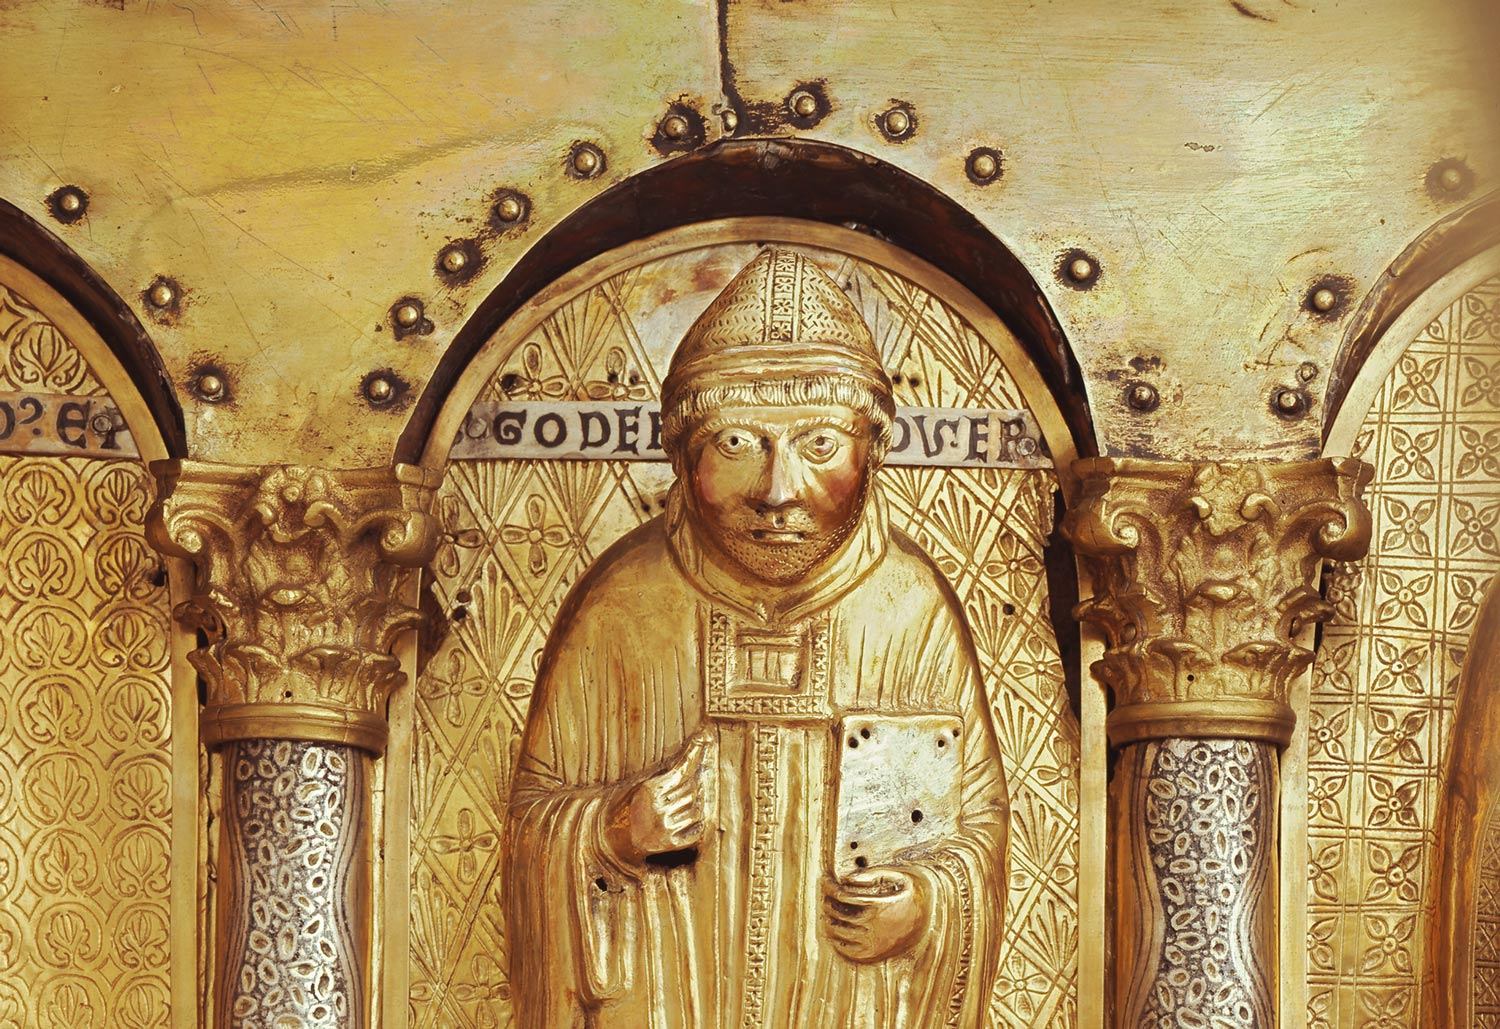 The Hildesheim Gotthard shrine is one of the oldest remaining relic shrines of the Middle Ages.